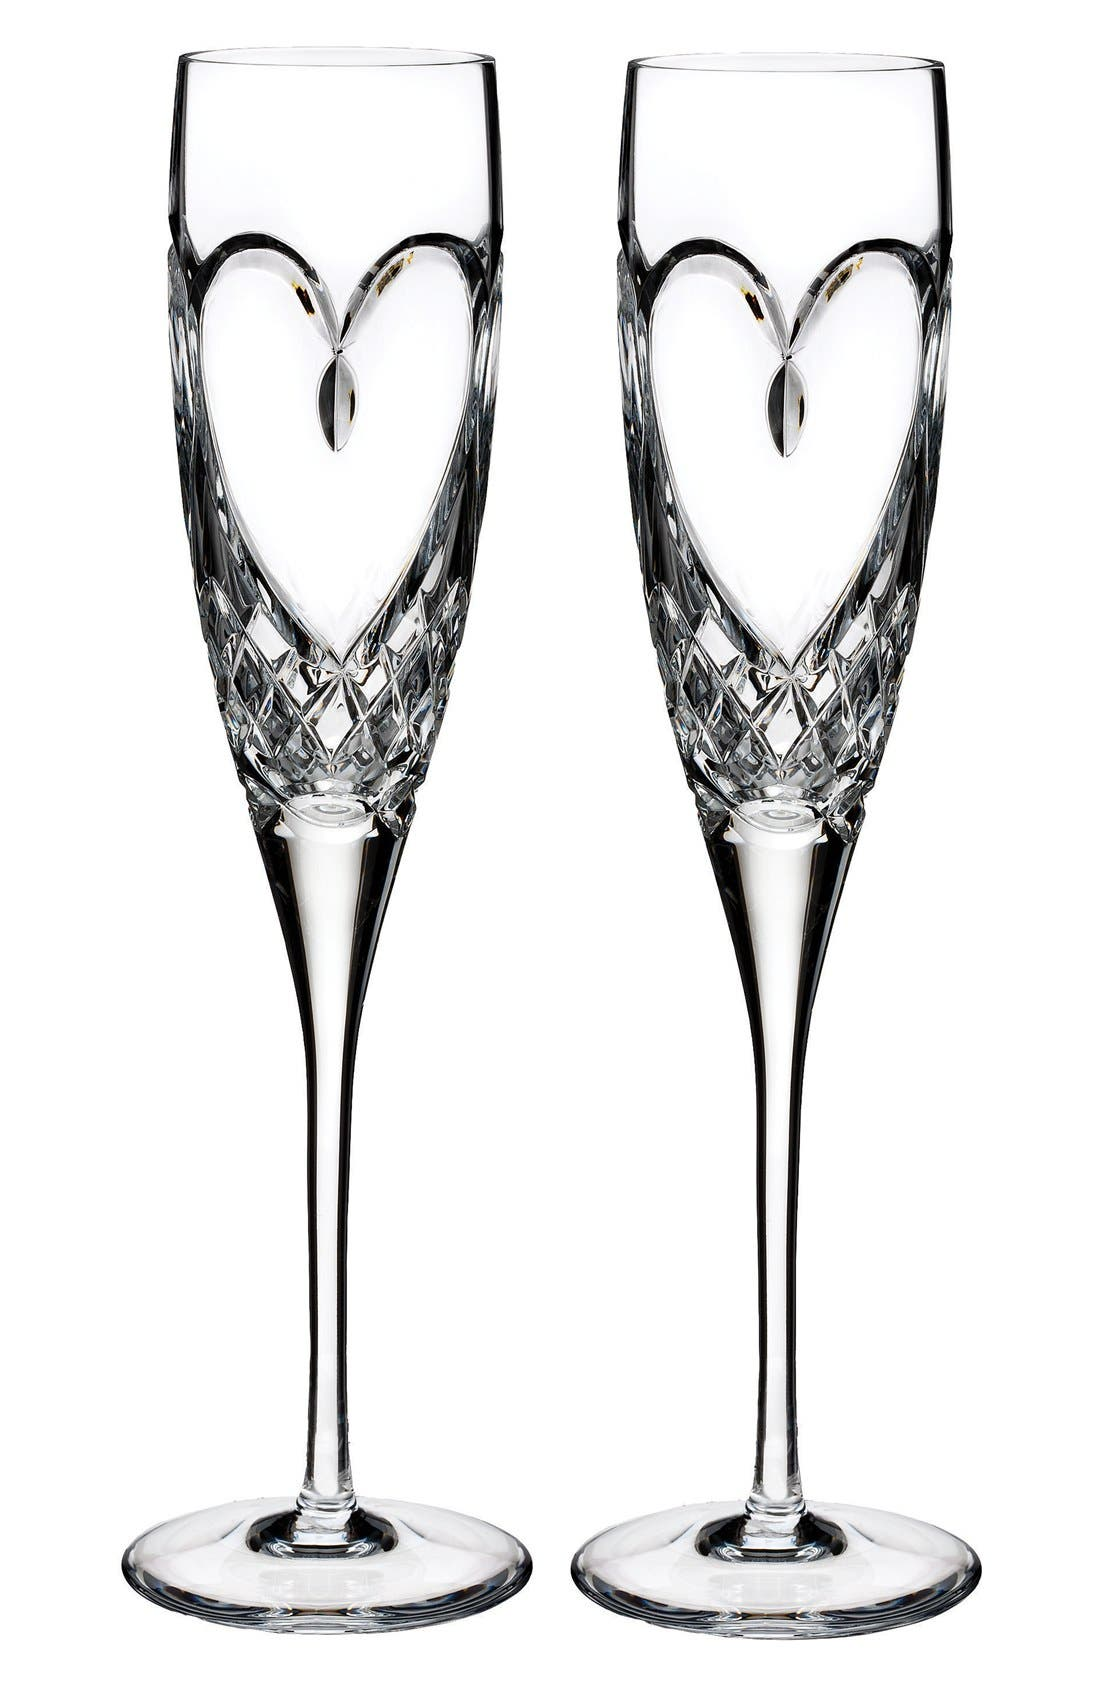 Alternate Image 1 Selected - Waterford 'True Love' Lead Crystal Champagne Flutes (Set of 2)